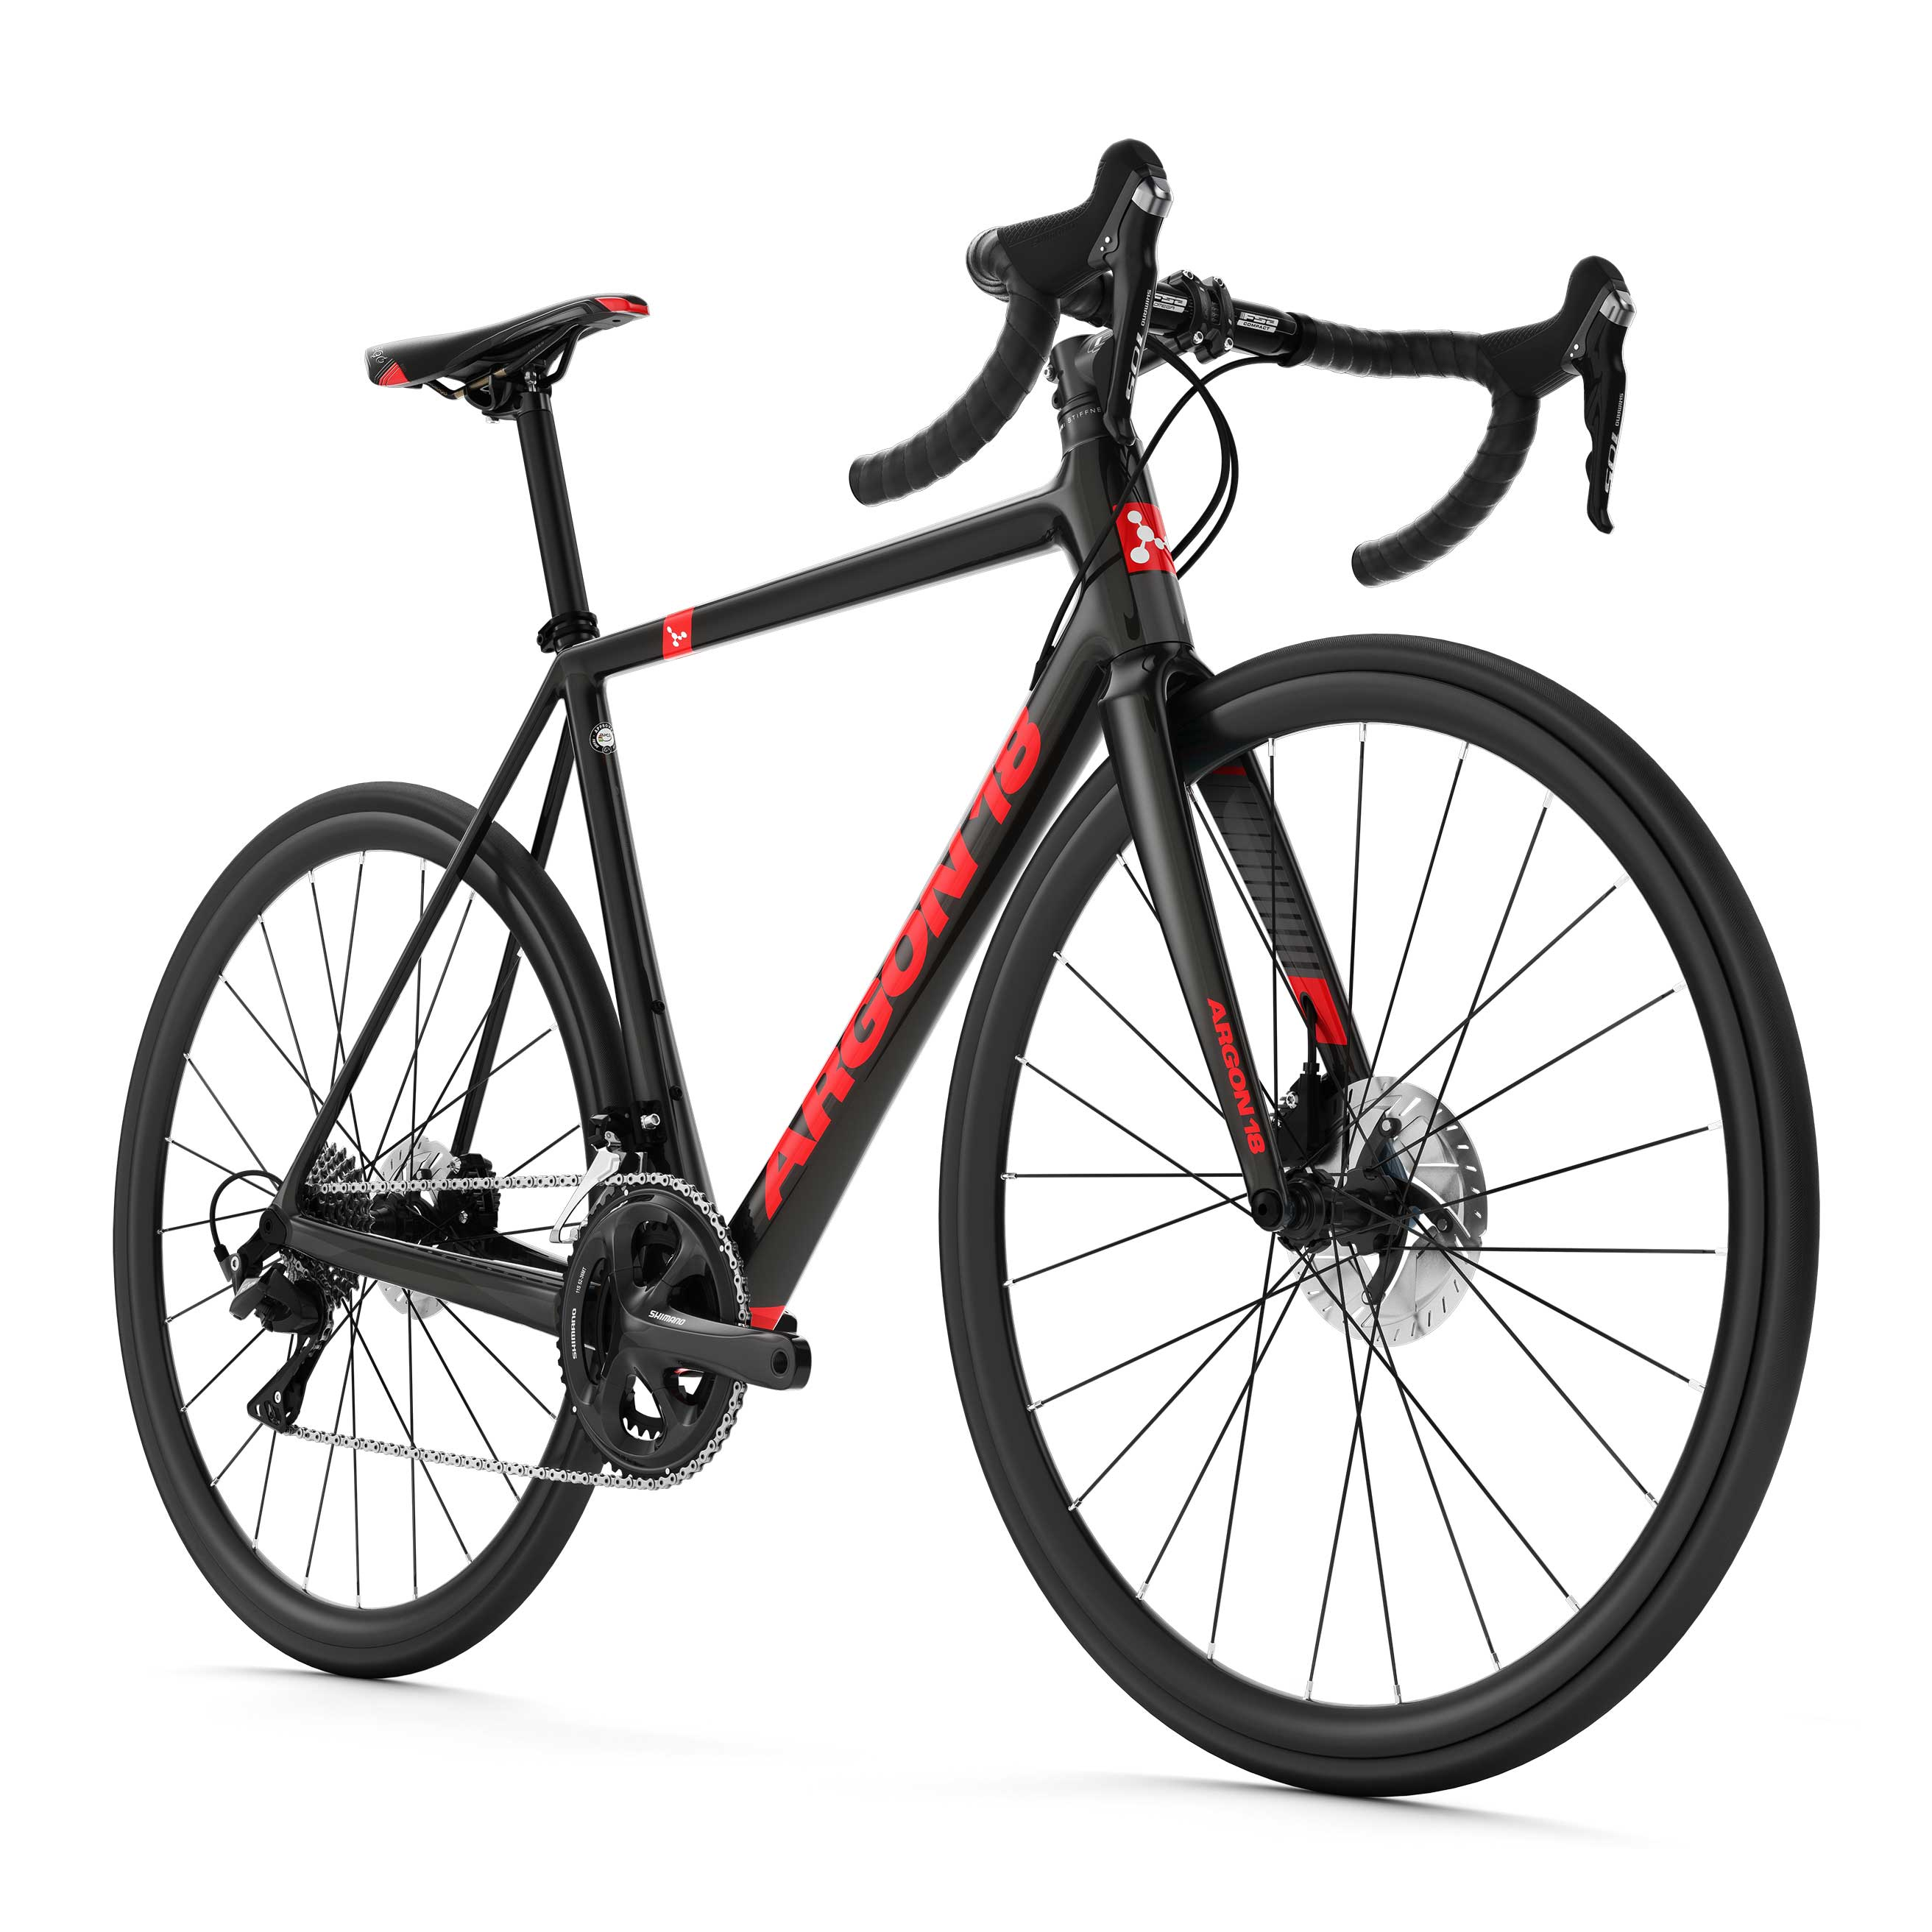 Argon 18 Gallium CS Disc 105 Mix Road Bike